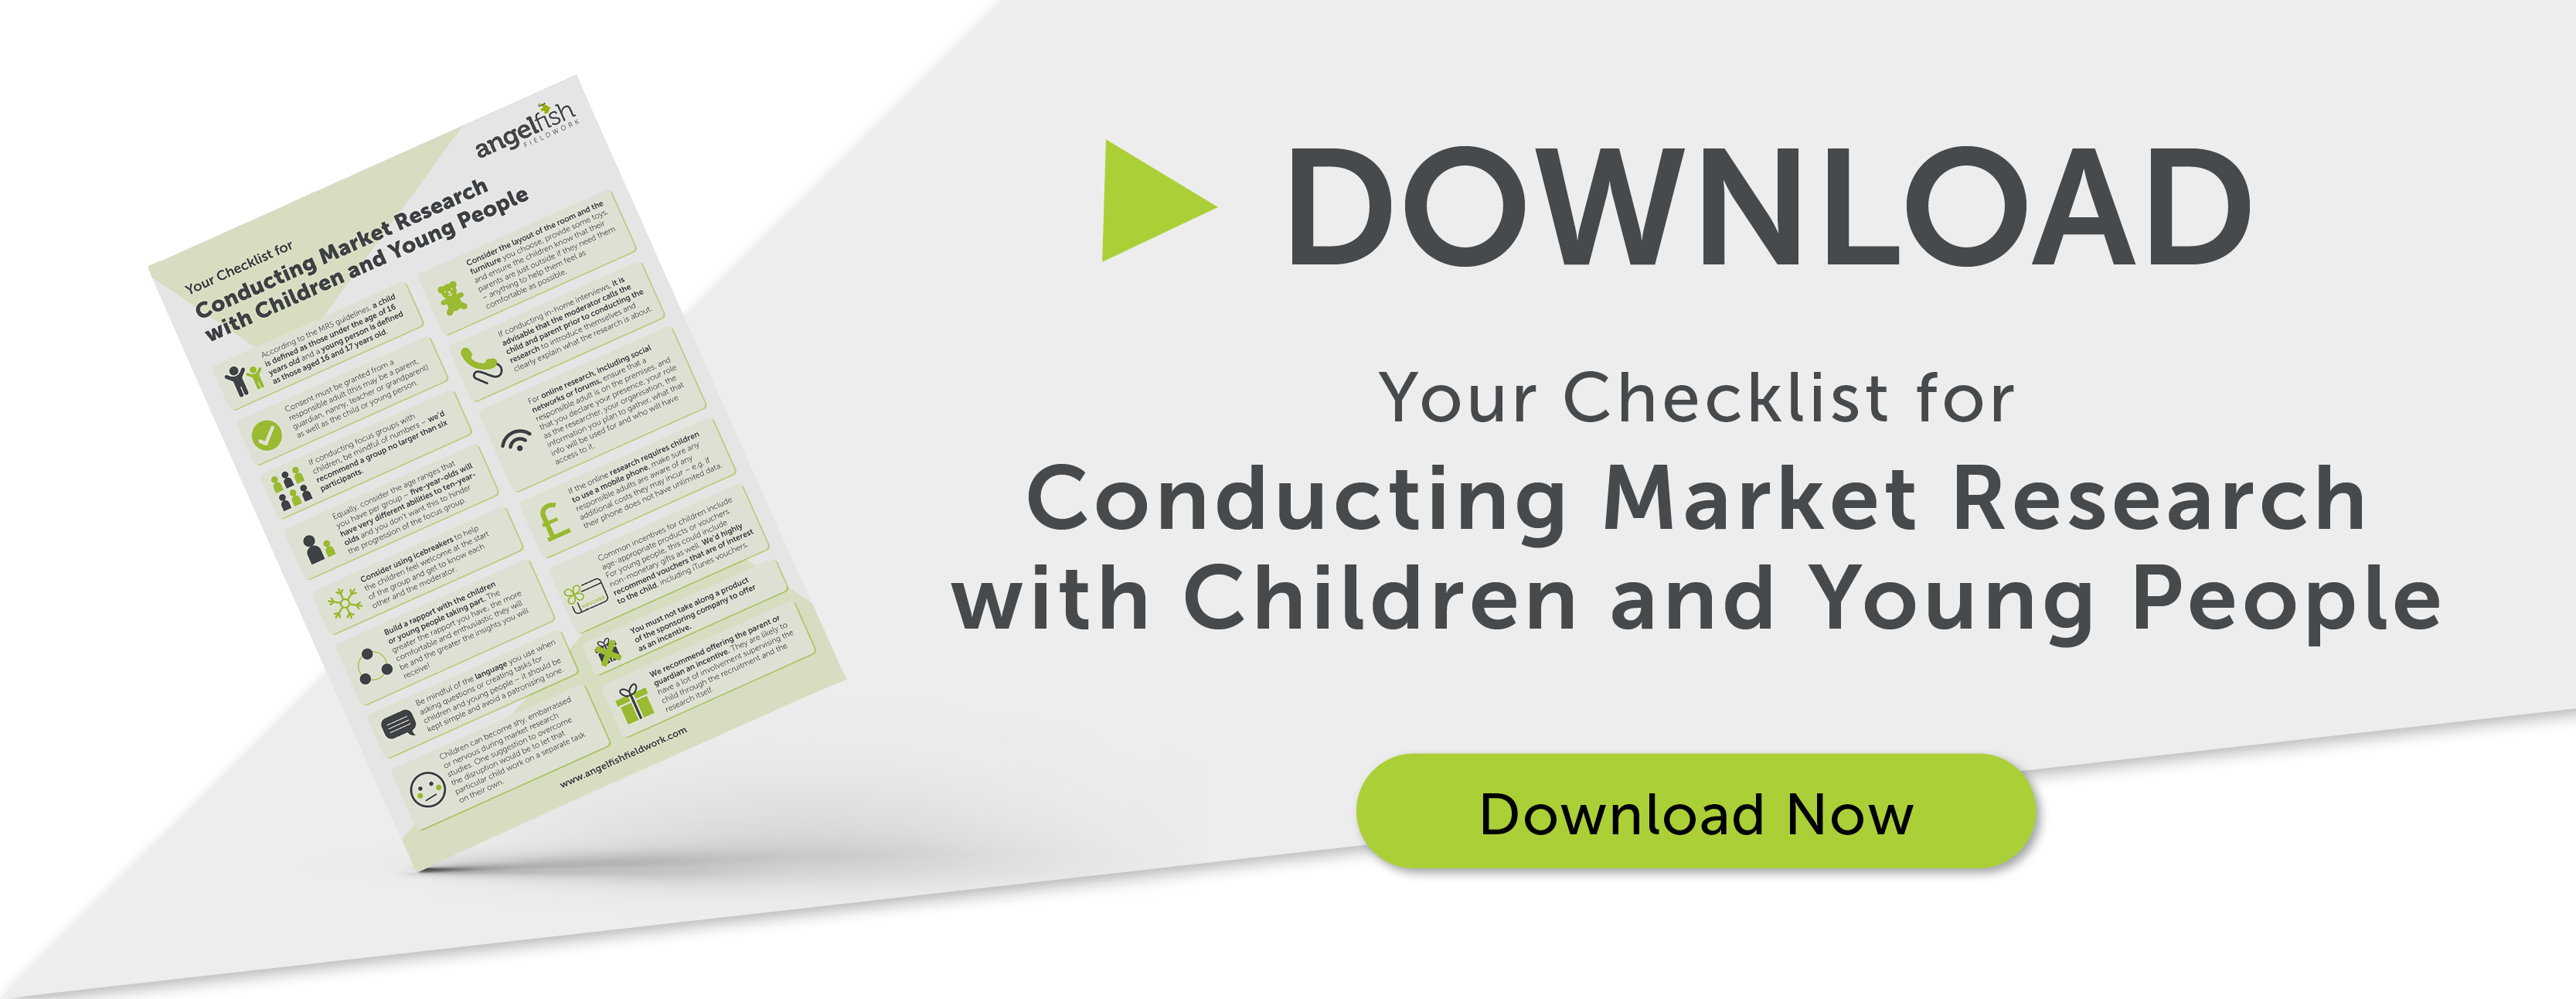 CTA banner: Your Checklist for Conducting Market Research with Children and Young People